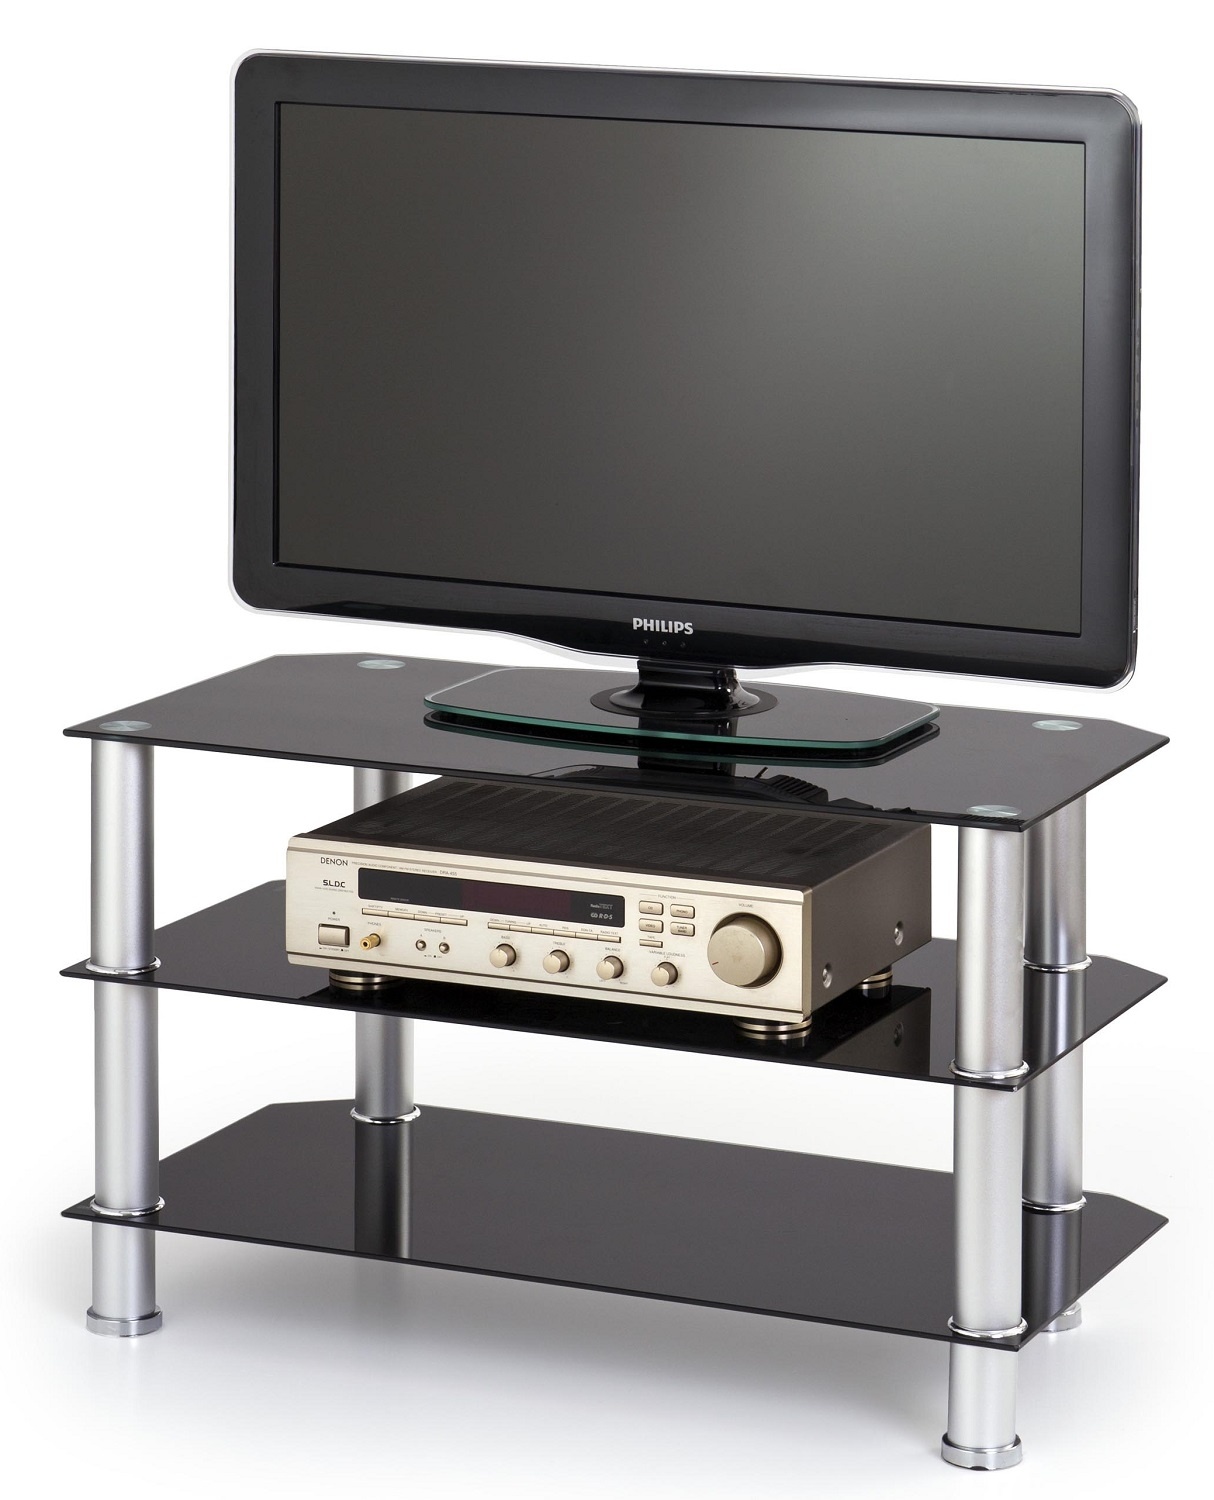 Tv-meubel Noki 80 cm breed in zwart